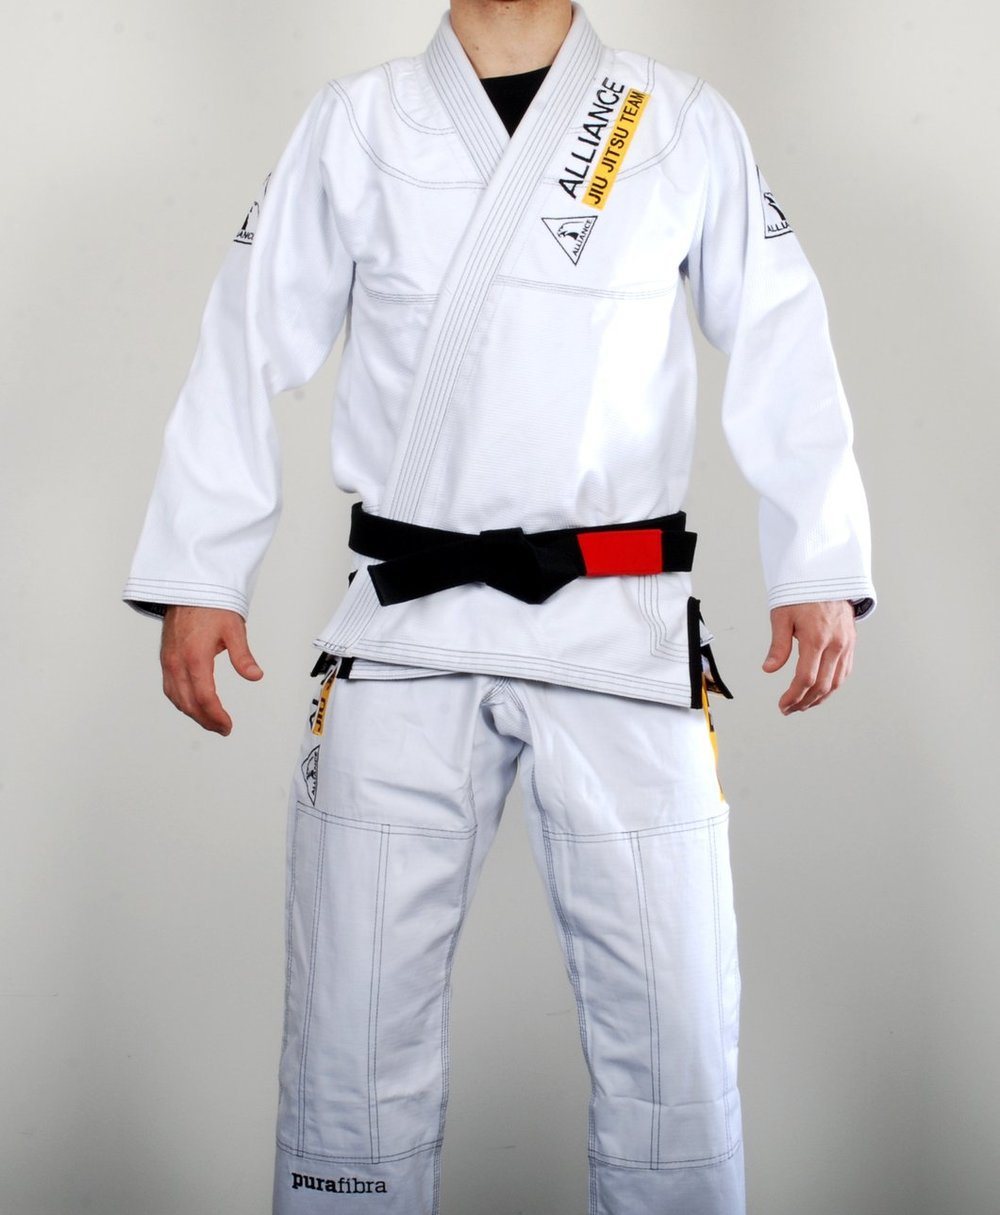 Alliance White Uniforms.jpg